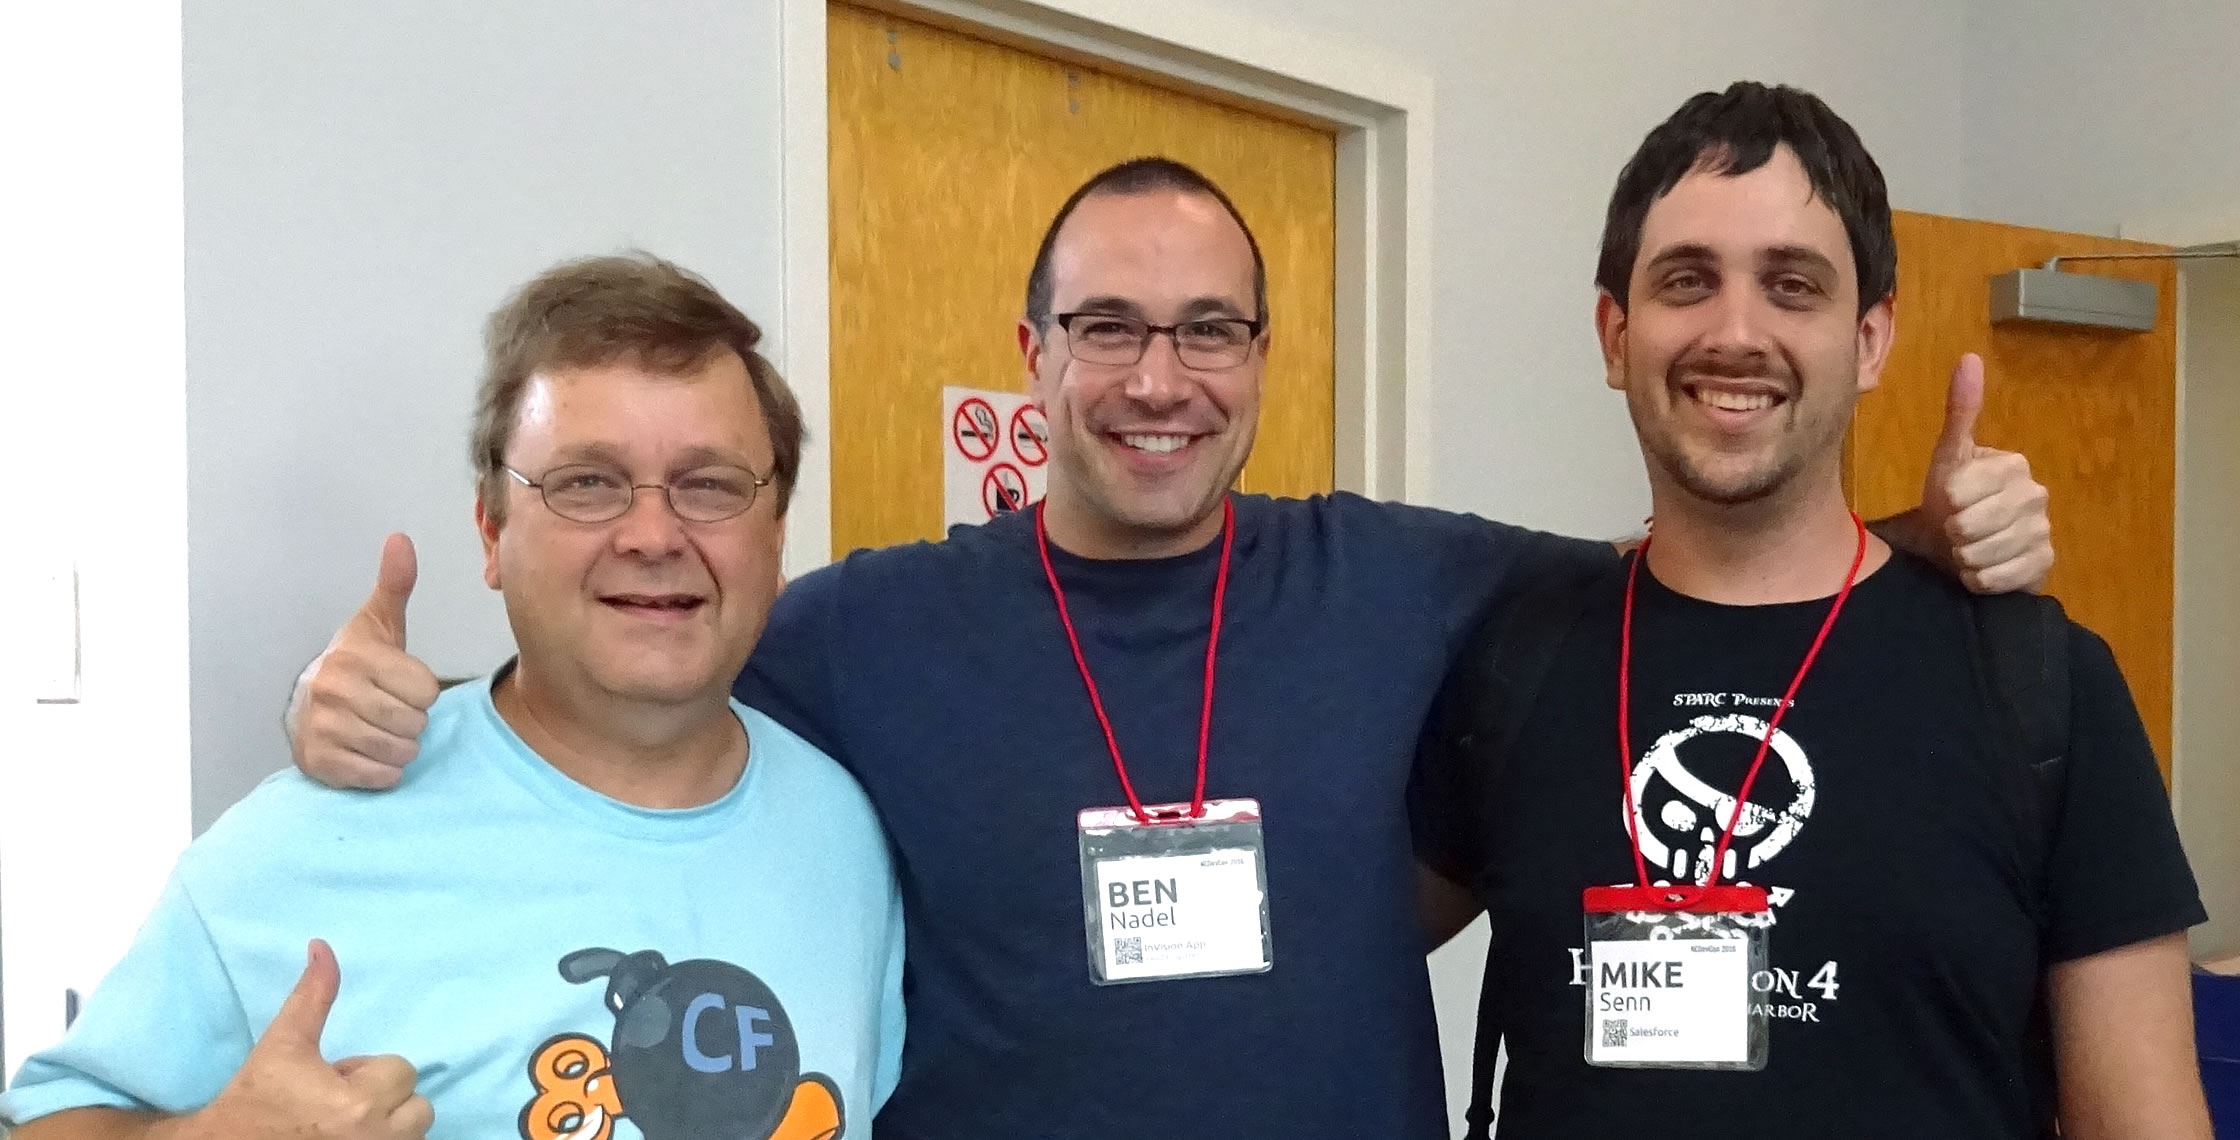 Ben Nadel at NCDevCon 2016 (Raleigh, NC) with: Phillip Senn and Michael Senn